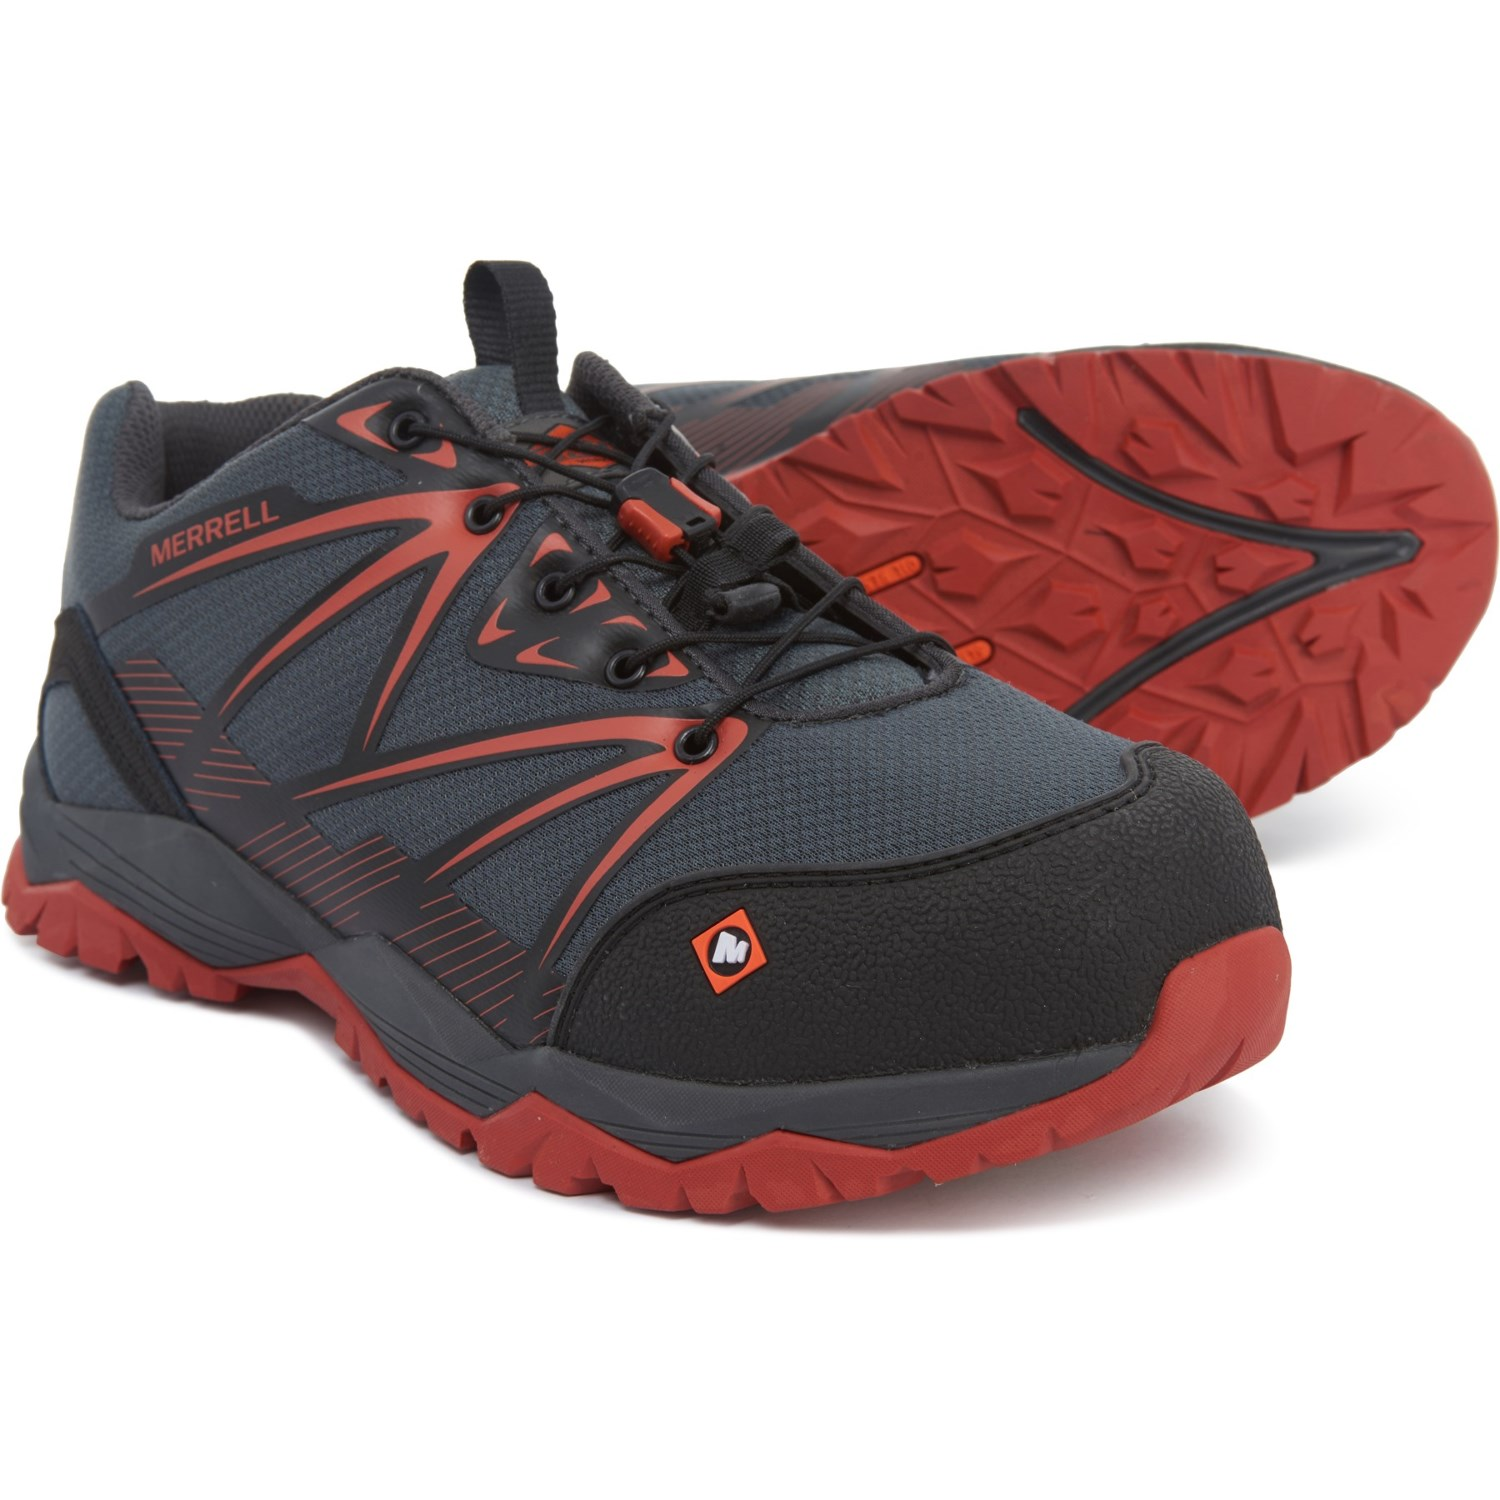 24ccecbecc Merrell Fullbench Work Shoes - Composite Safety Toe (For Men)